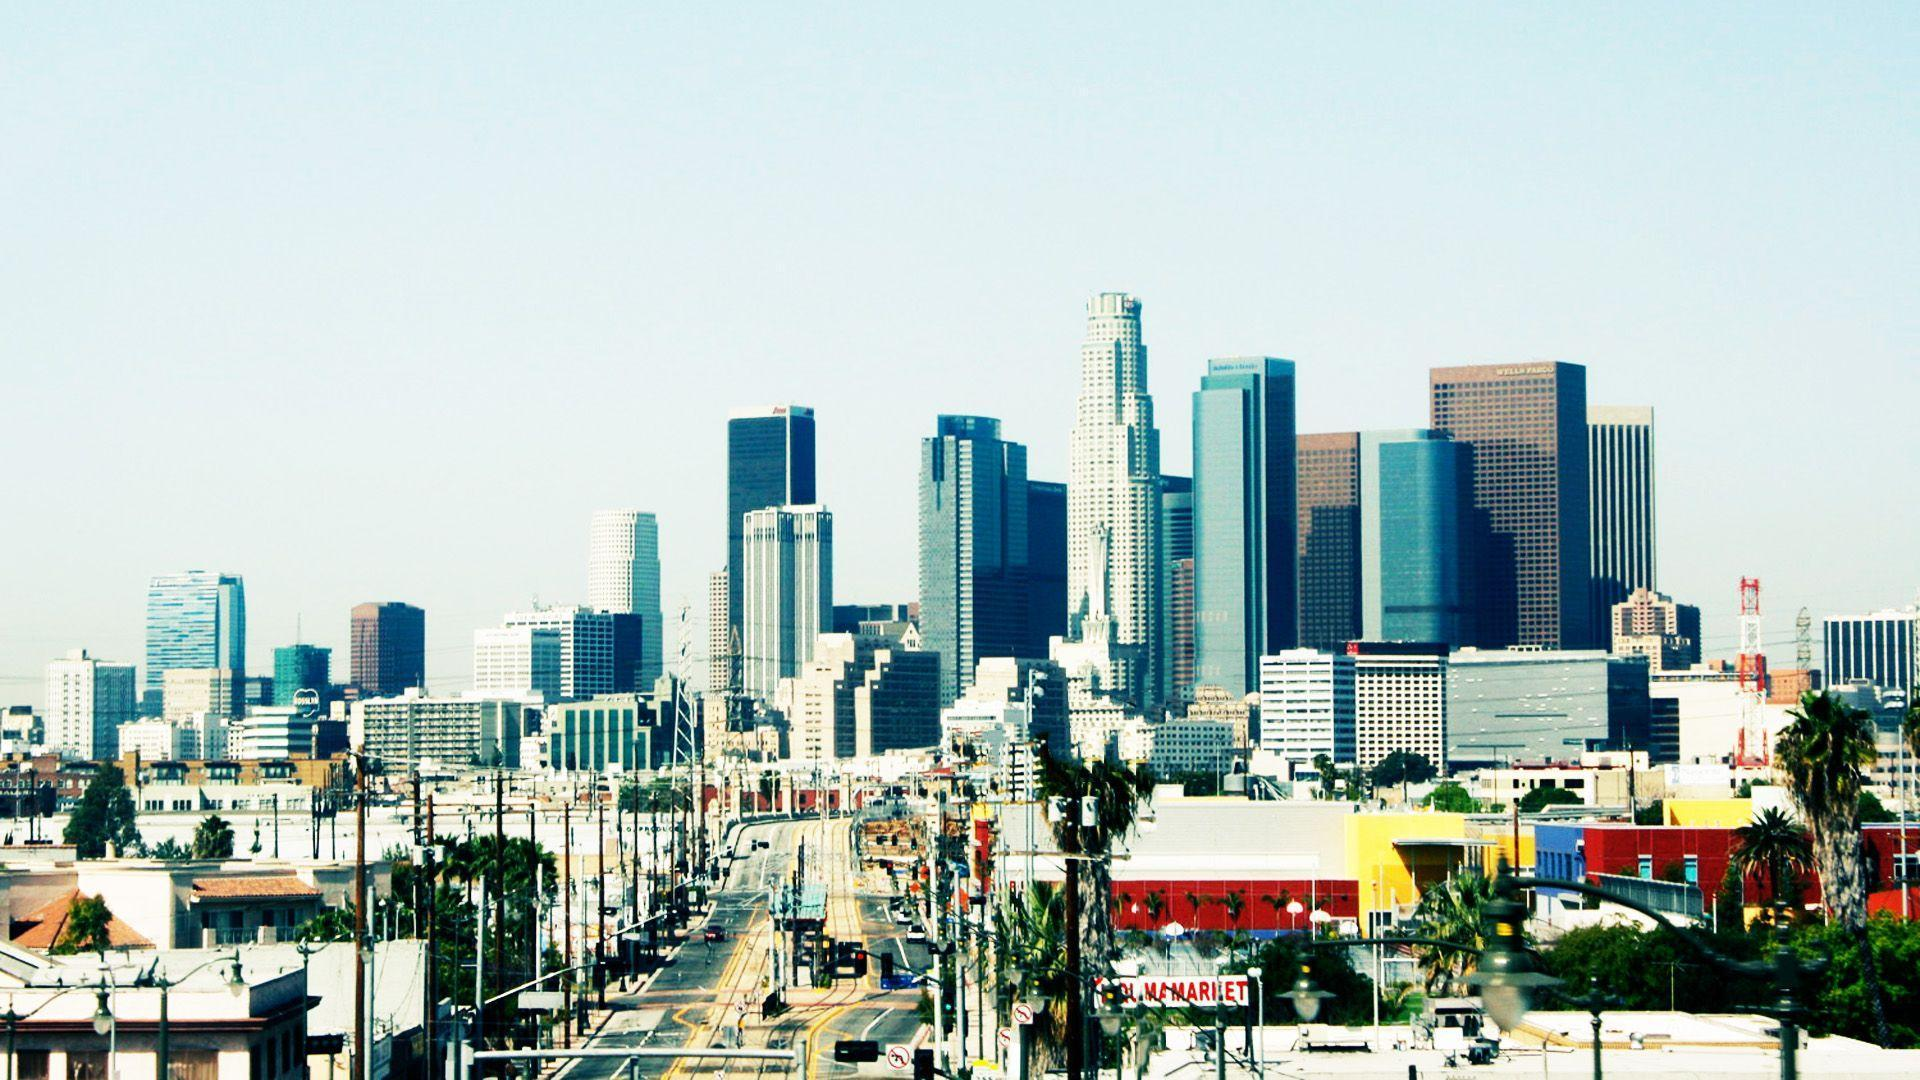 Los Angeles, Downtown wallpaper – wallpaper free download